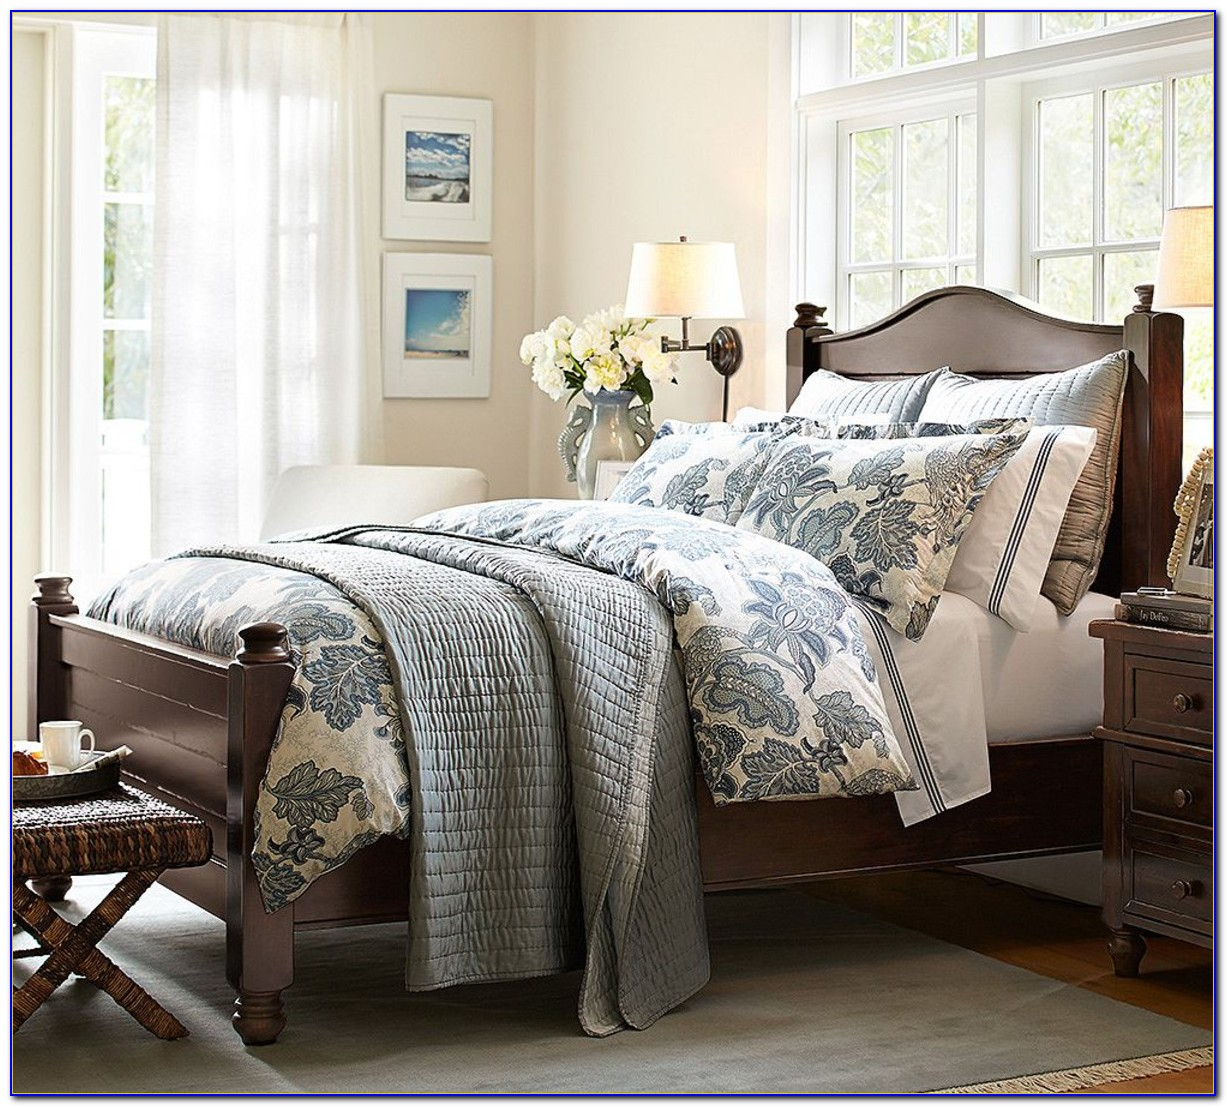 Pottery Barn Bedroom Furniture Assembly Instructions